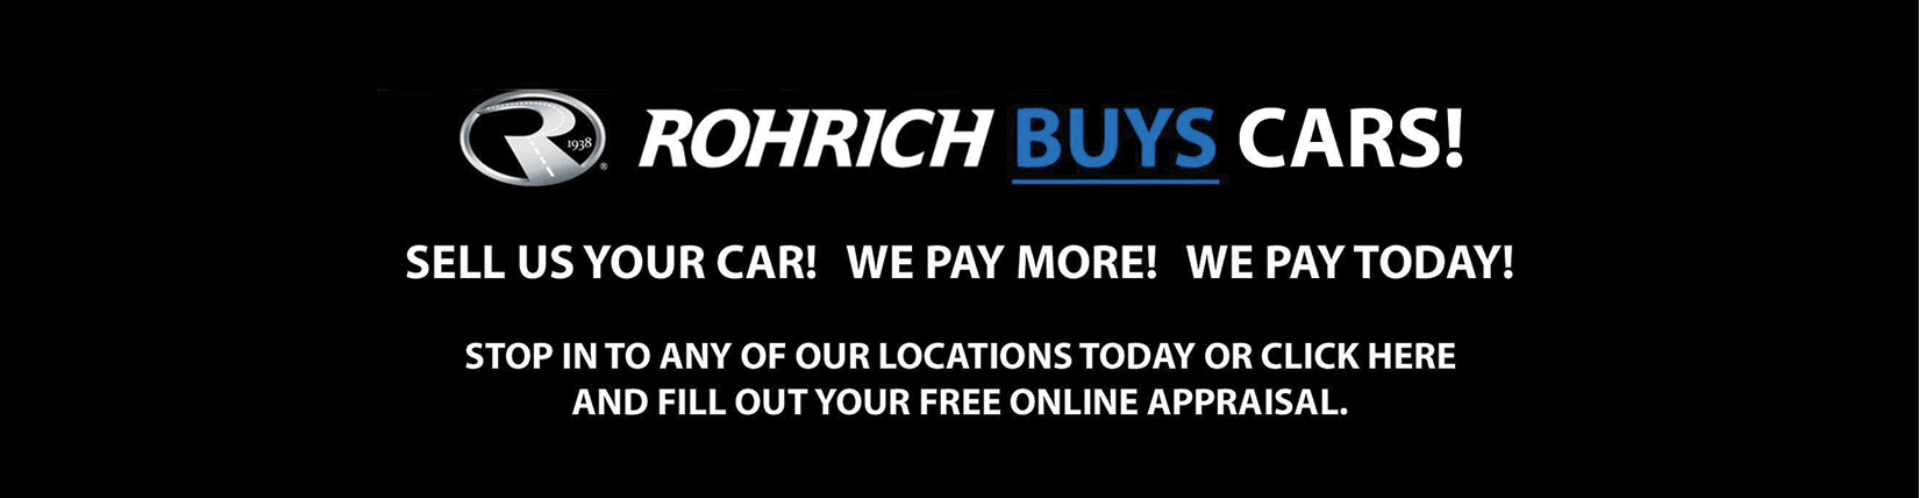 rohrich buys cars! banner